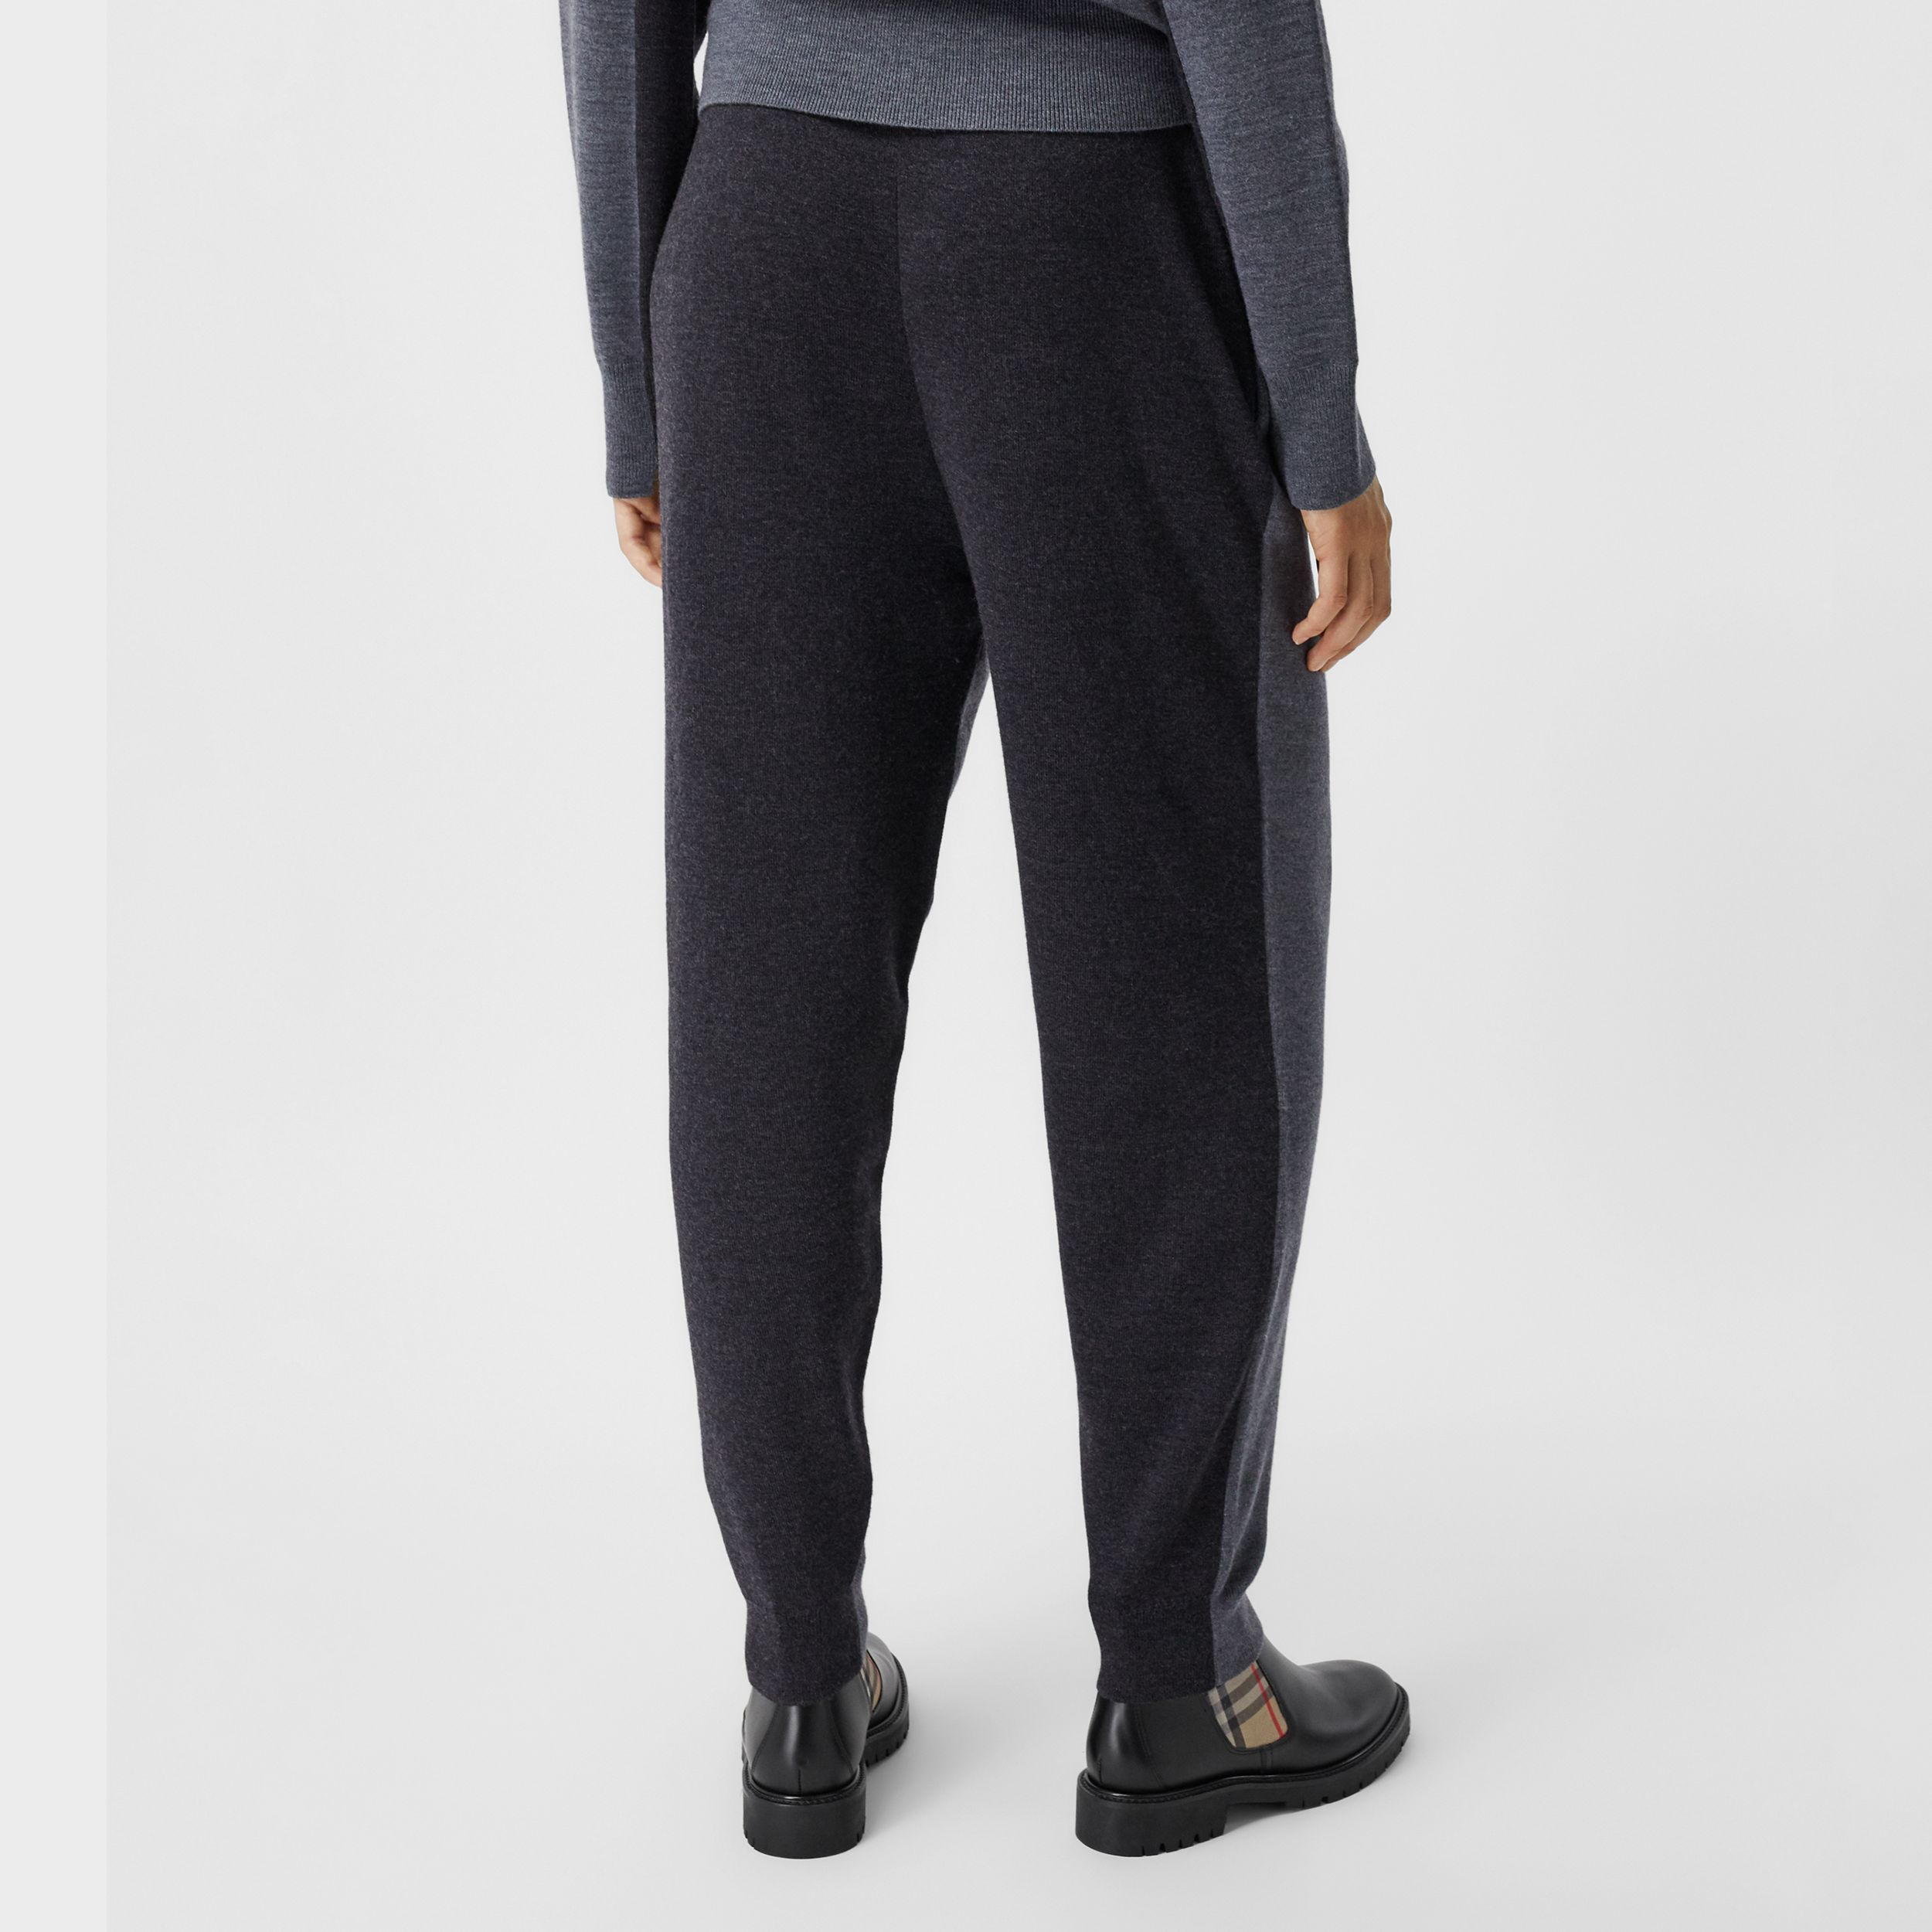 Two-tone Merino Wool Drawcord Jogging Pants in Charcoal Melange - Women | Burberry - 3